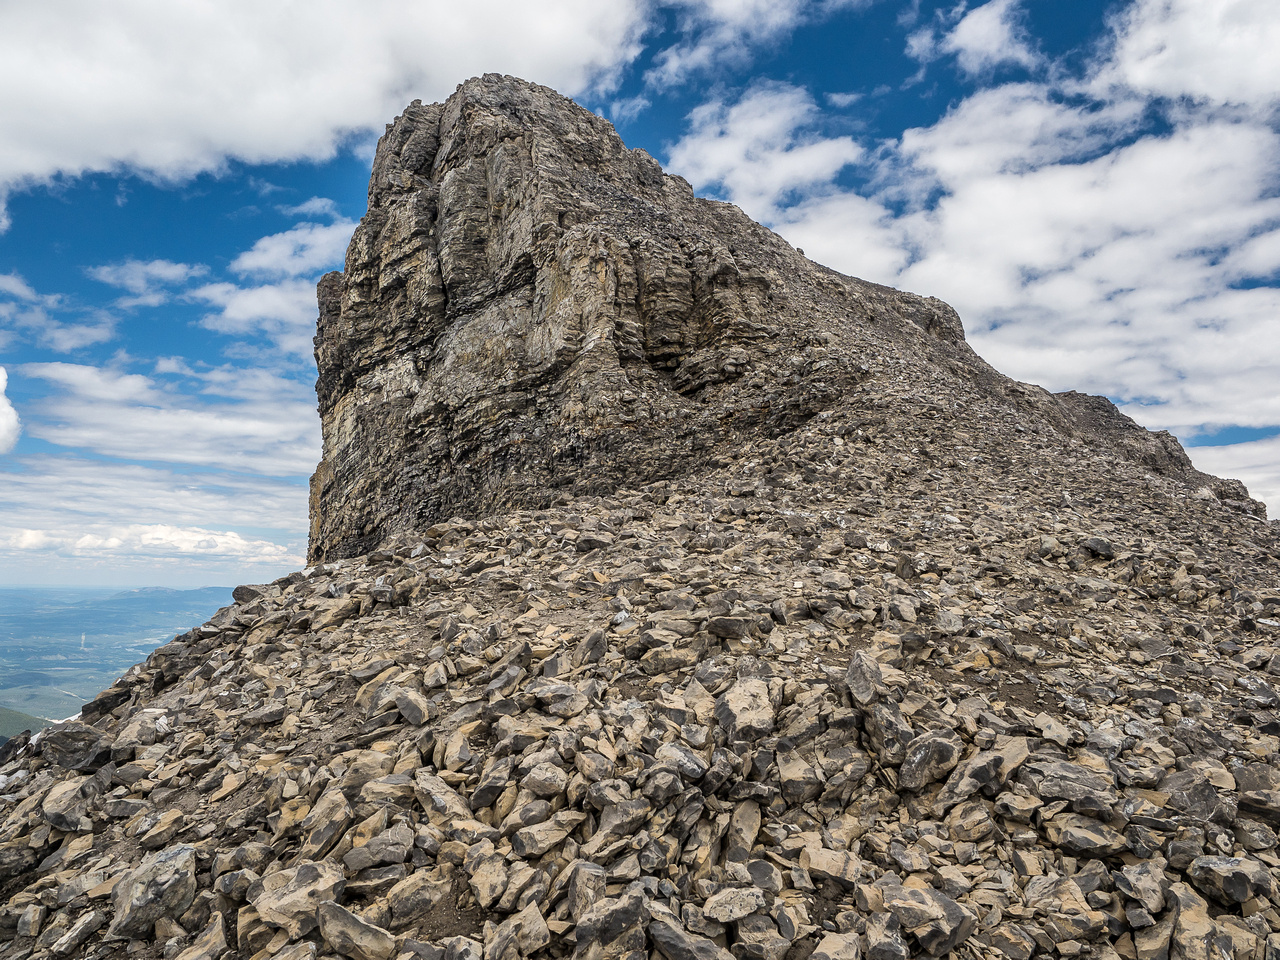 The interesting summit block - just easy scree despite appearances.